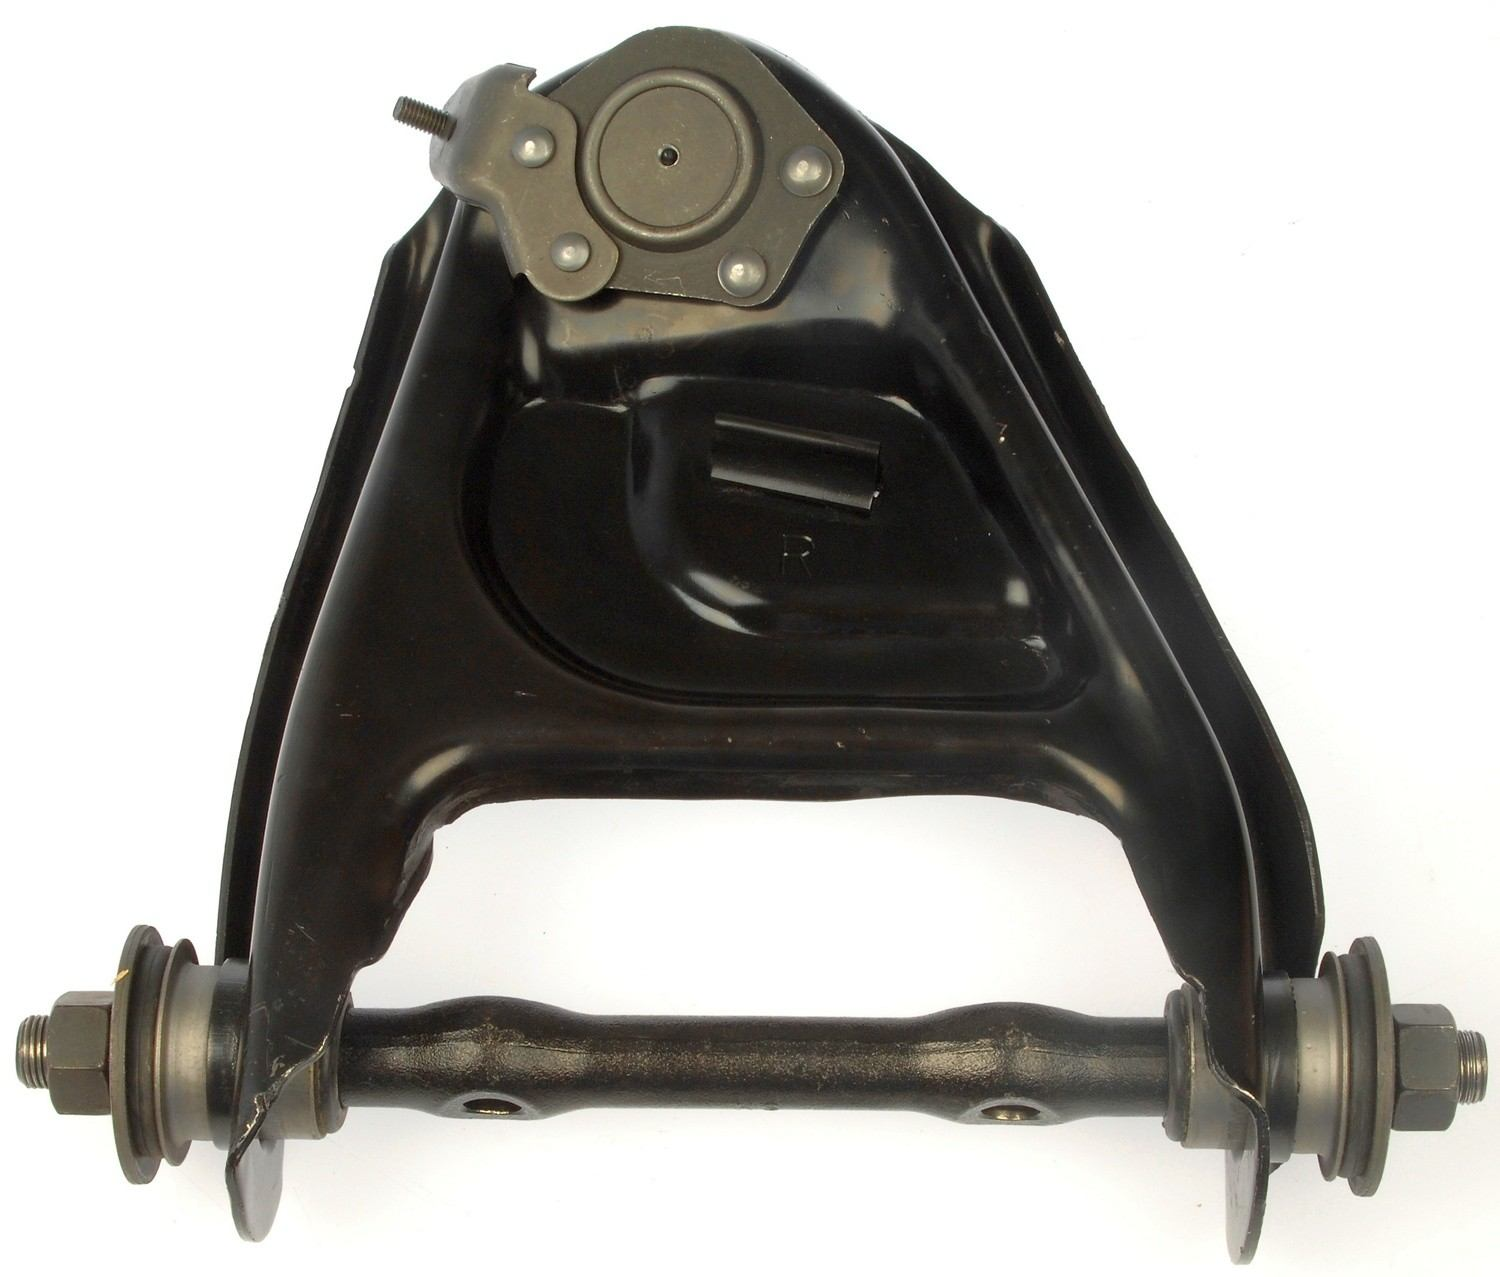 DORMAN OE SOLUTIONS - Suspension Control Arm And Ball Joint Assembly - DRE 520-182